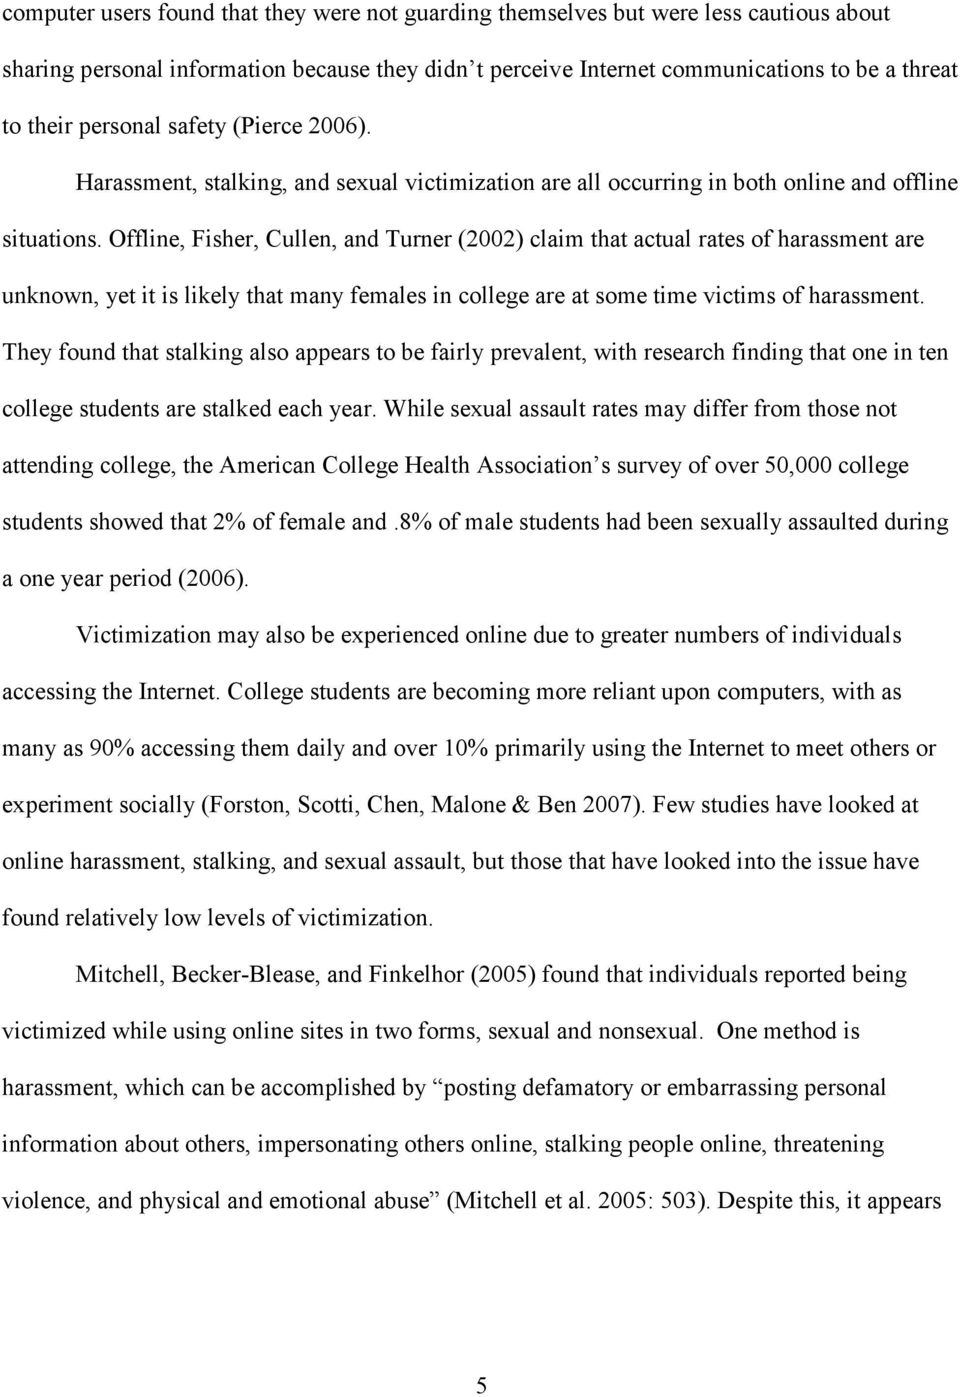 Offline, Fisher, Cullen, and Turner (2002) claim that actual rates of harassment are unknown, yet it is likely that many females in college are at some time victims of harassment.